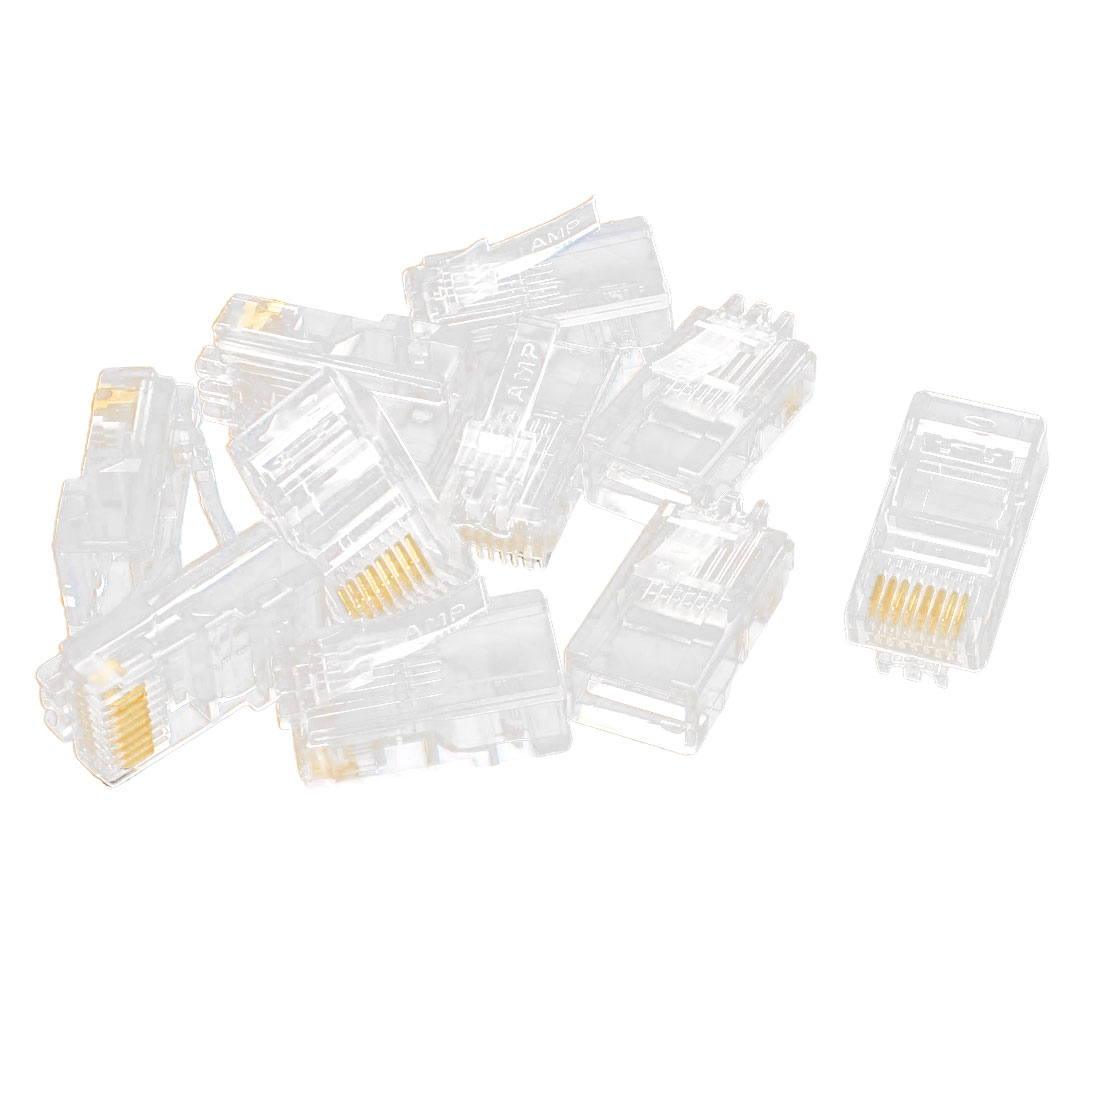 10 Pcs RJ45 Network Cable Modular Cat5 CAT5e 8P8C Connector End